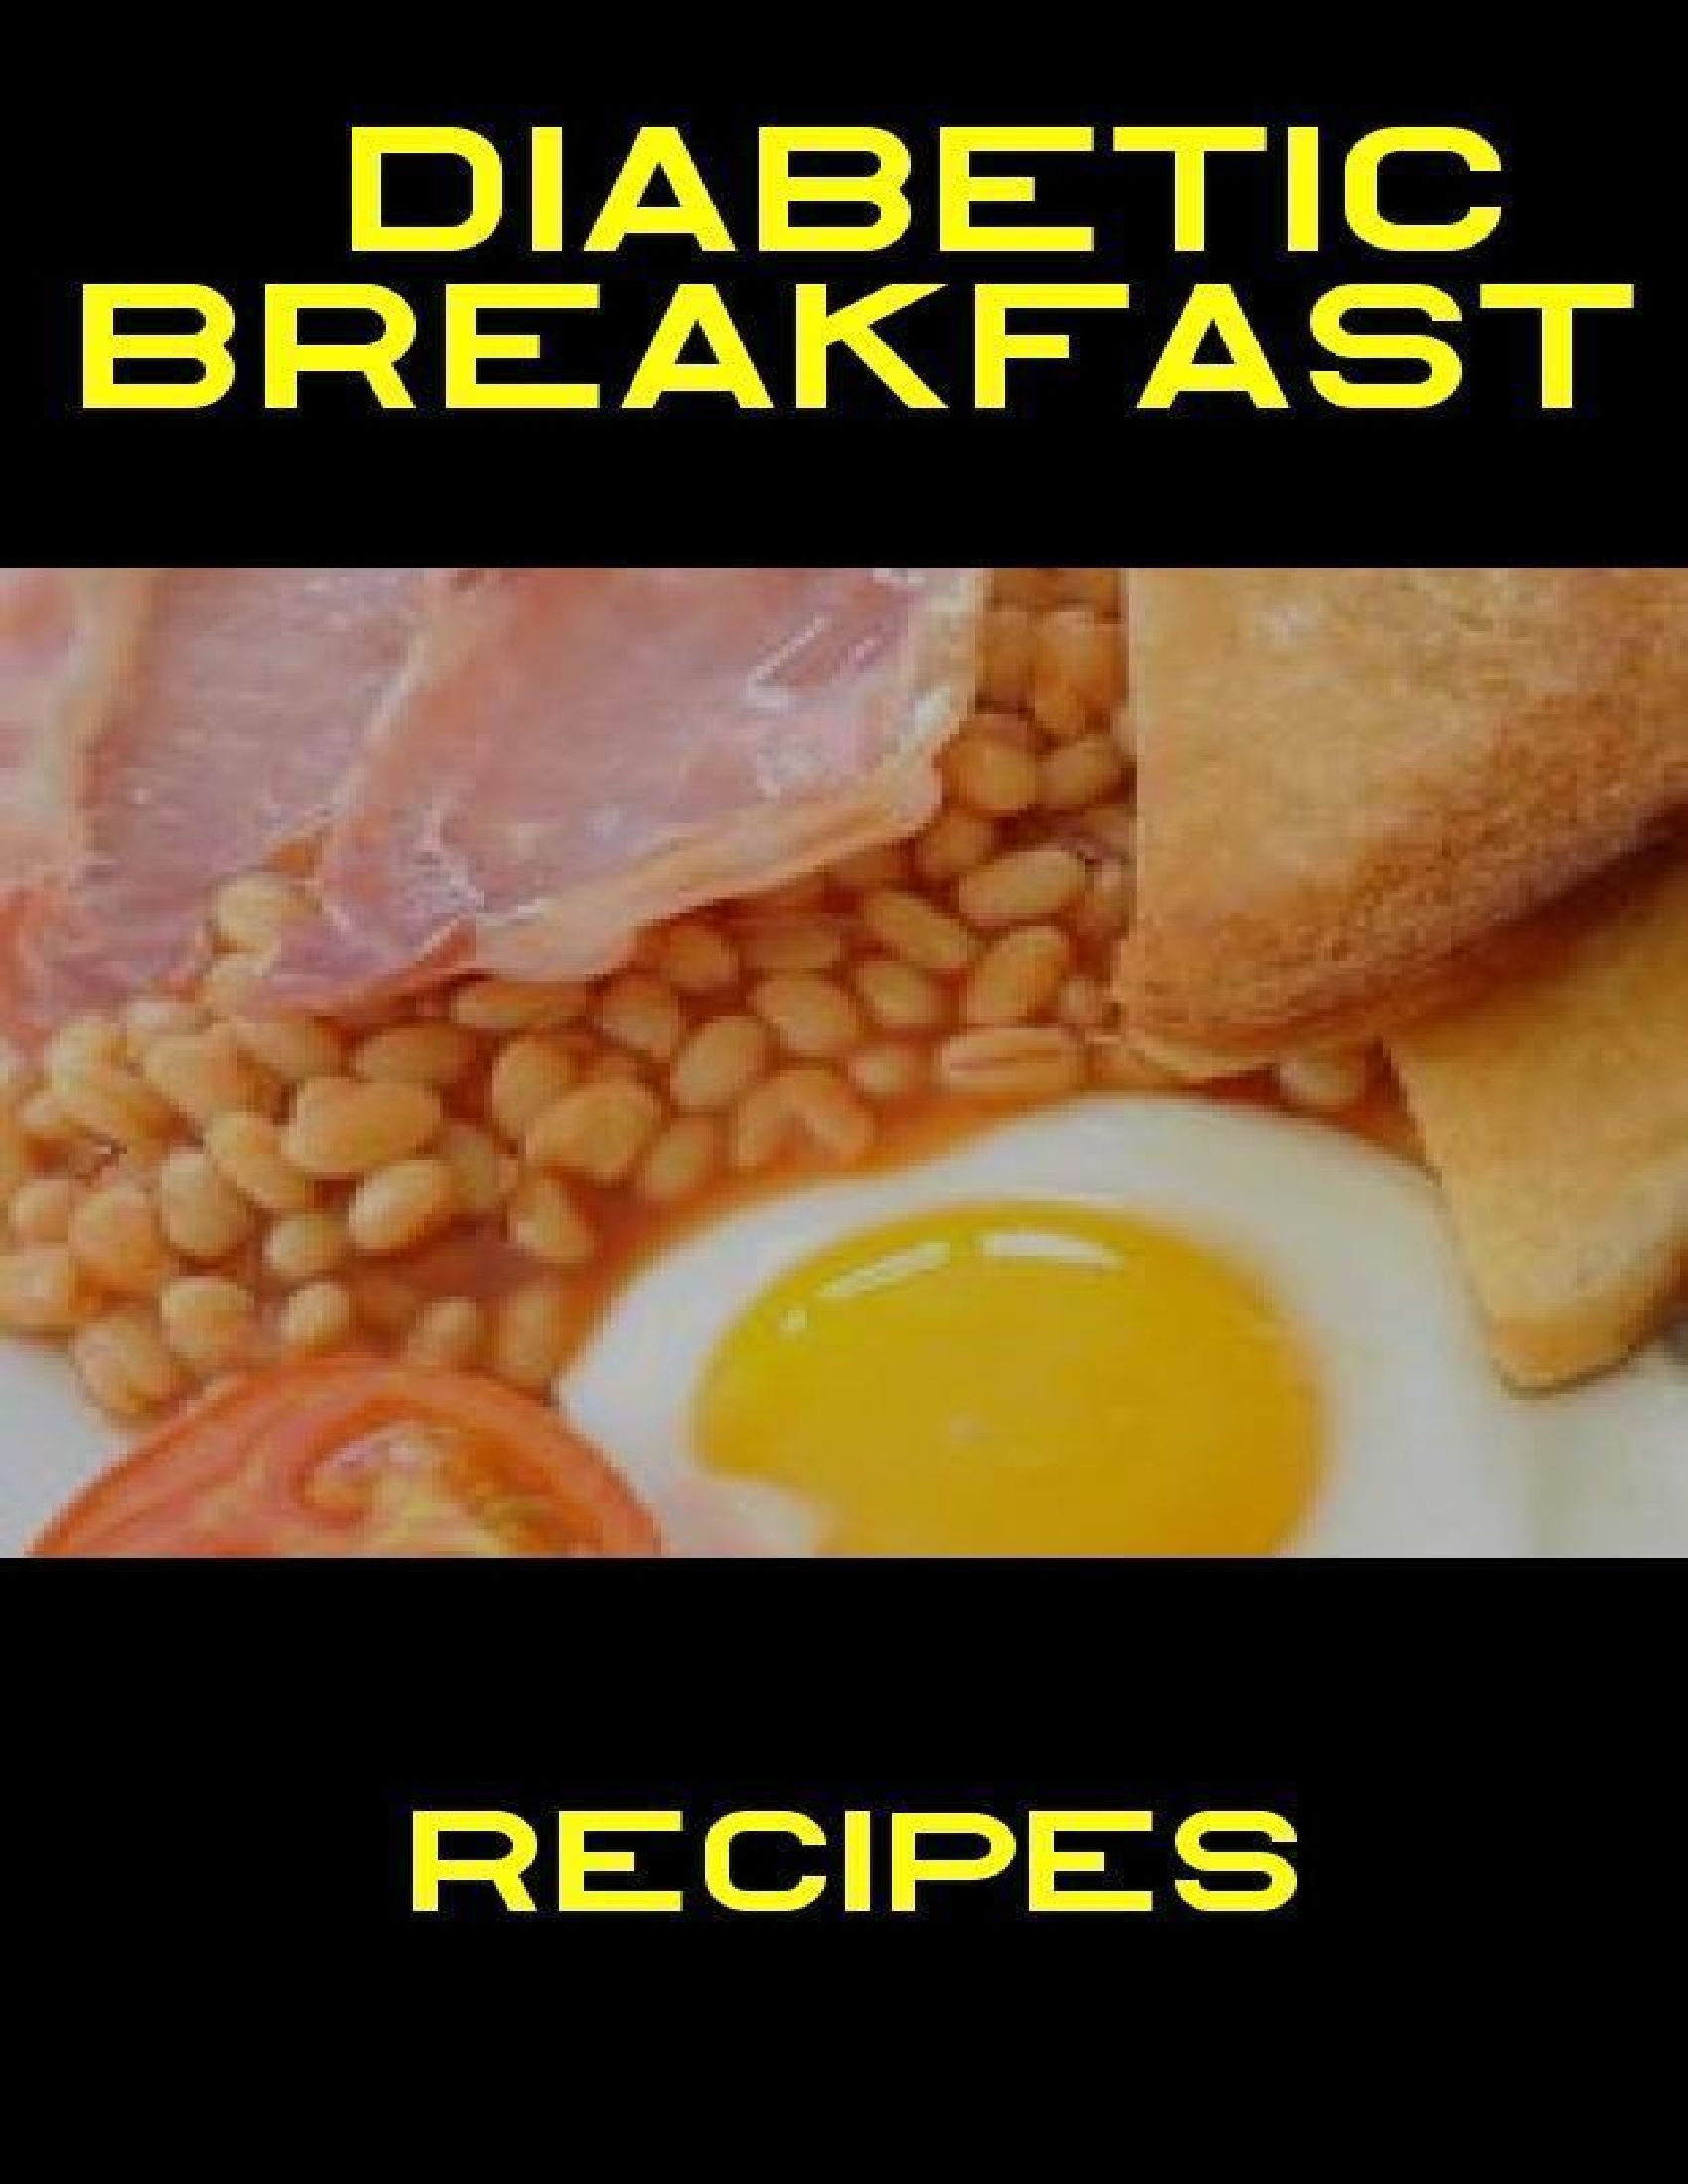 Diabetic Breakfast Recipes  Diabetic Breakfast Recipes by Jenny Brown on iBooks